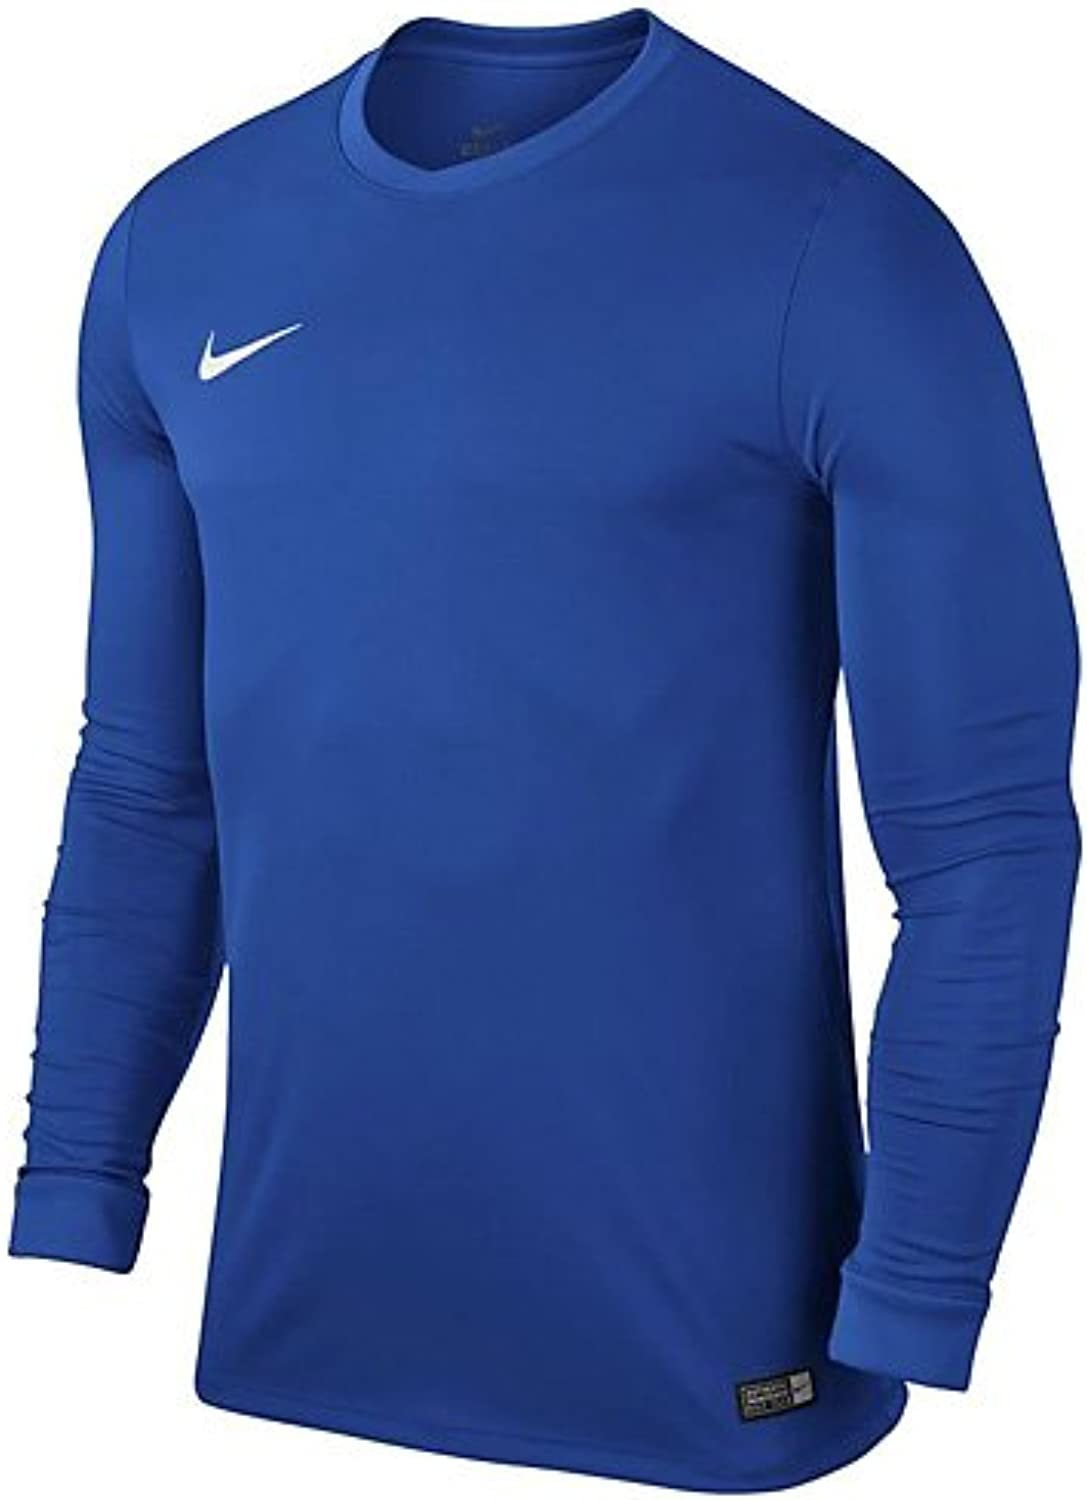 (X-Small, Royal blueee White) - Nike Park VI LS Jersey Junior